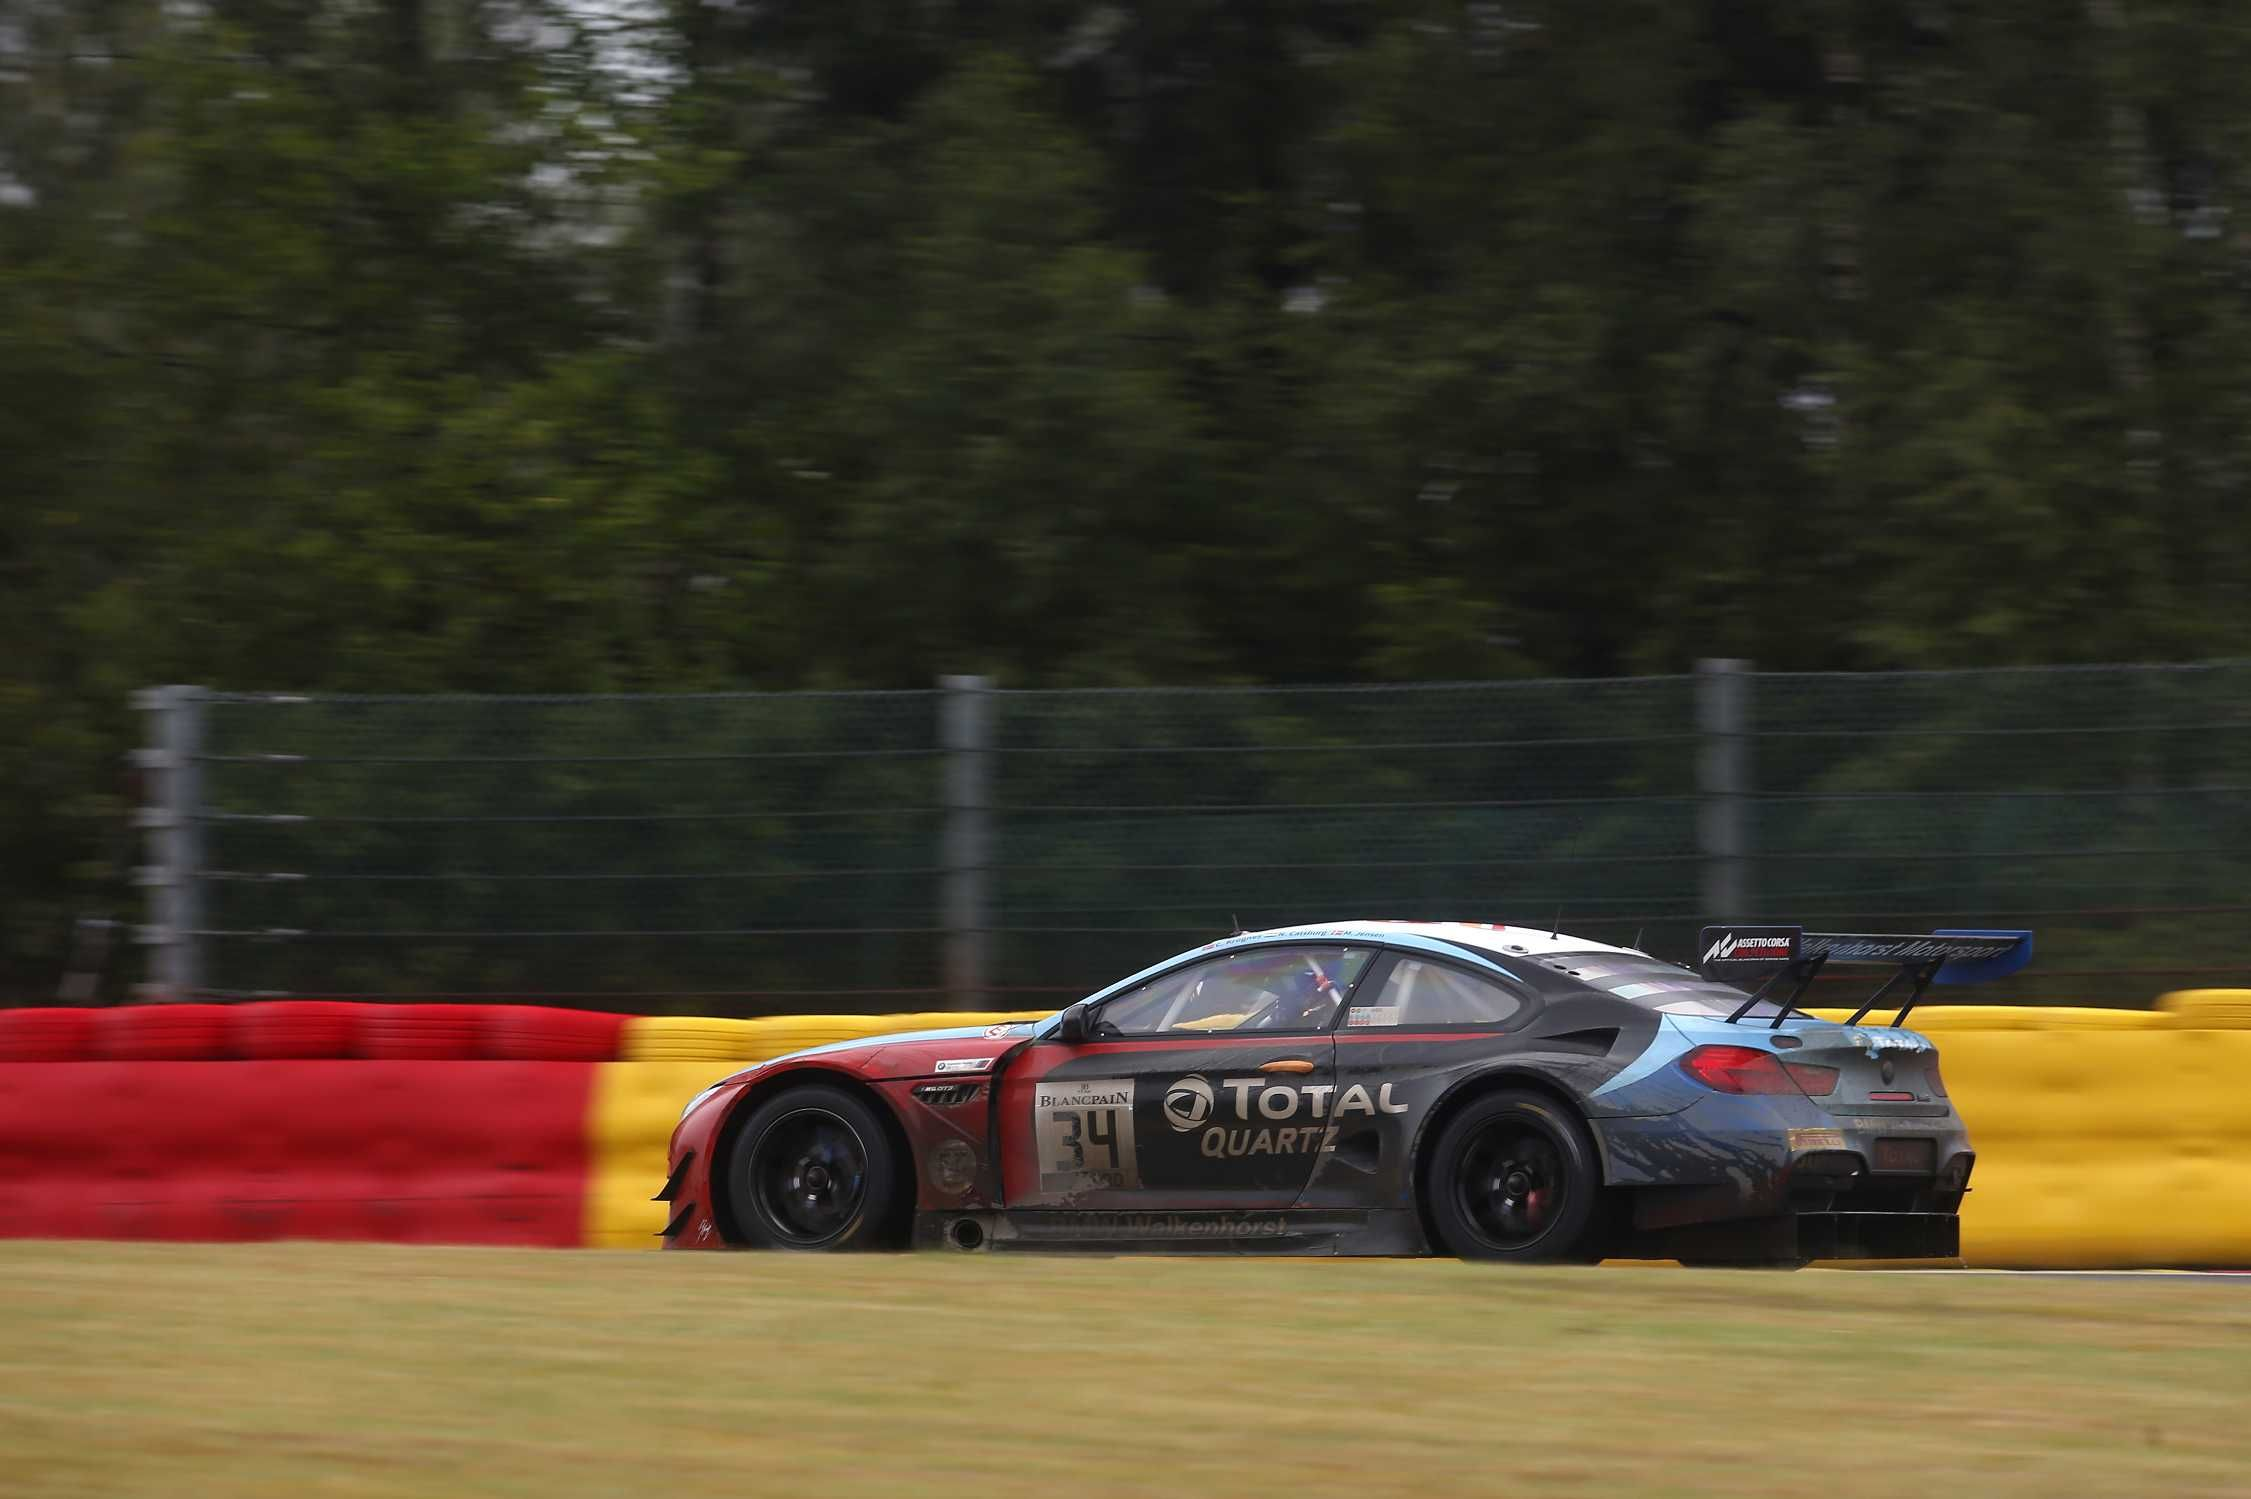 Walkenhorst Motorsport Bmw M6 Gt3 Reaches 11th Place After Chasing